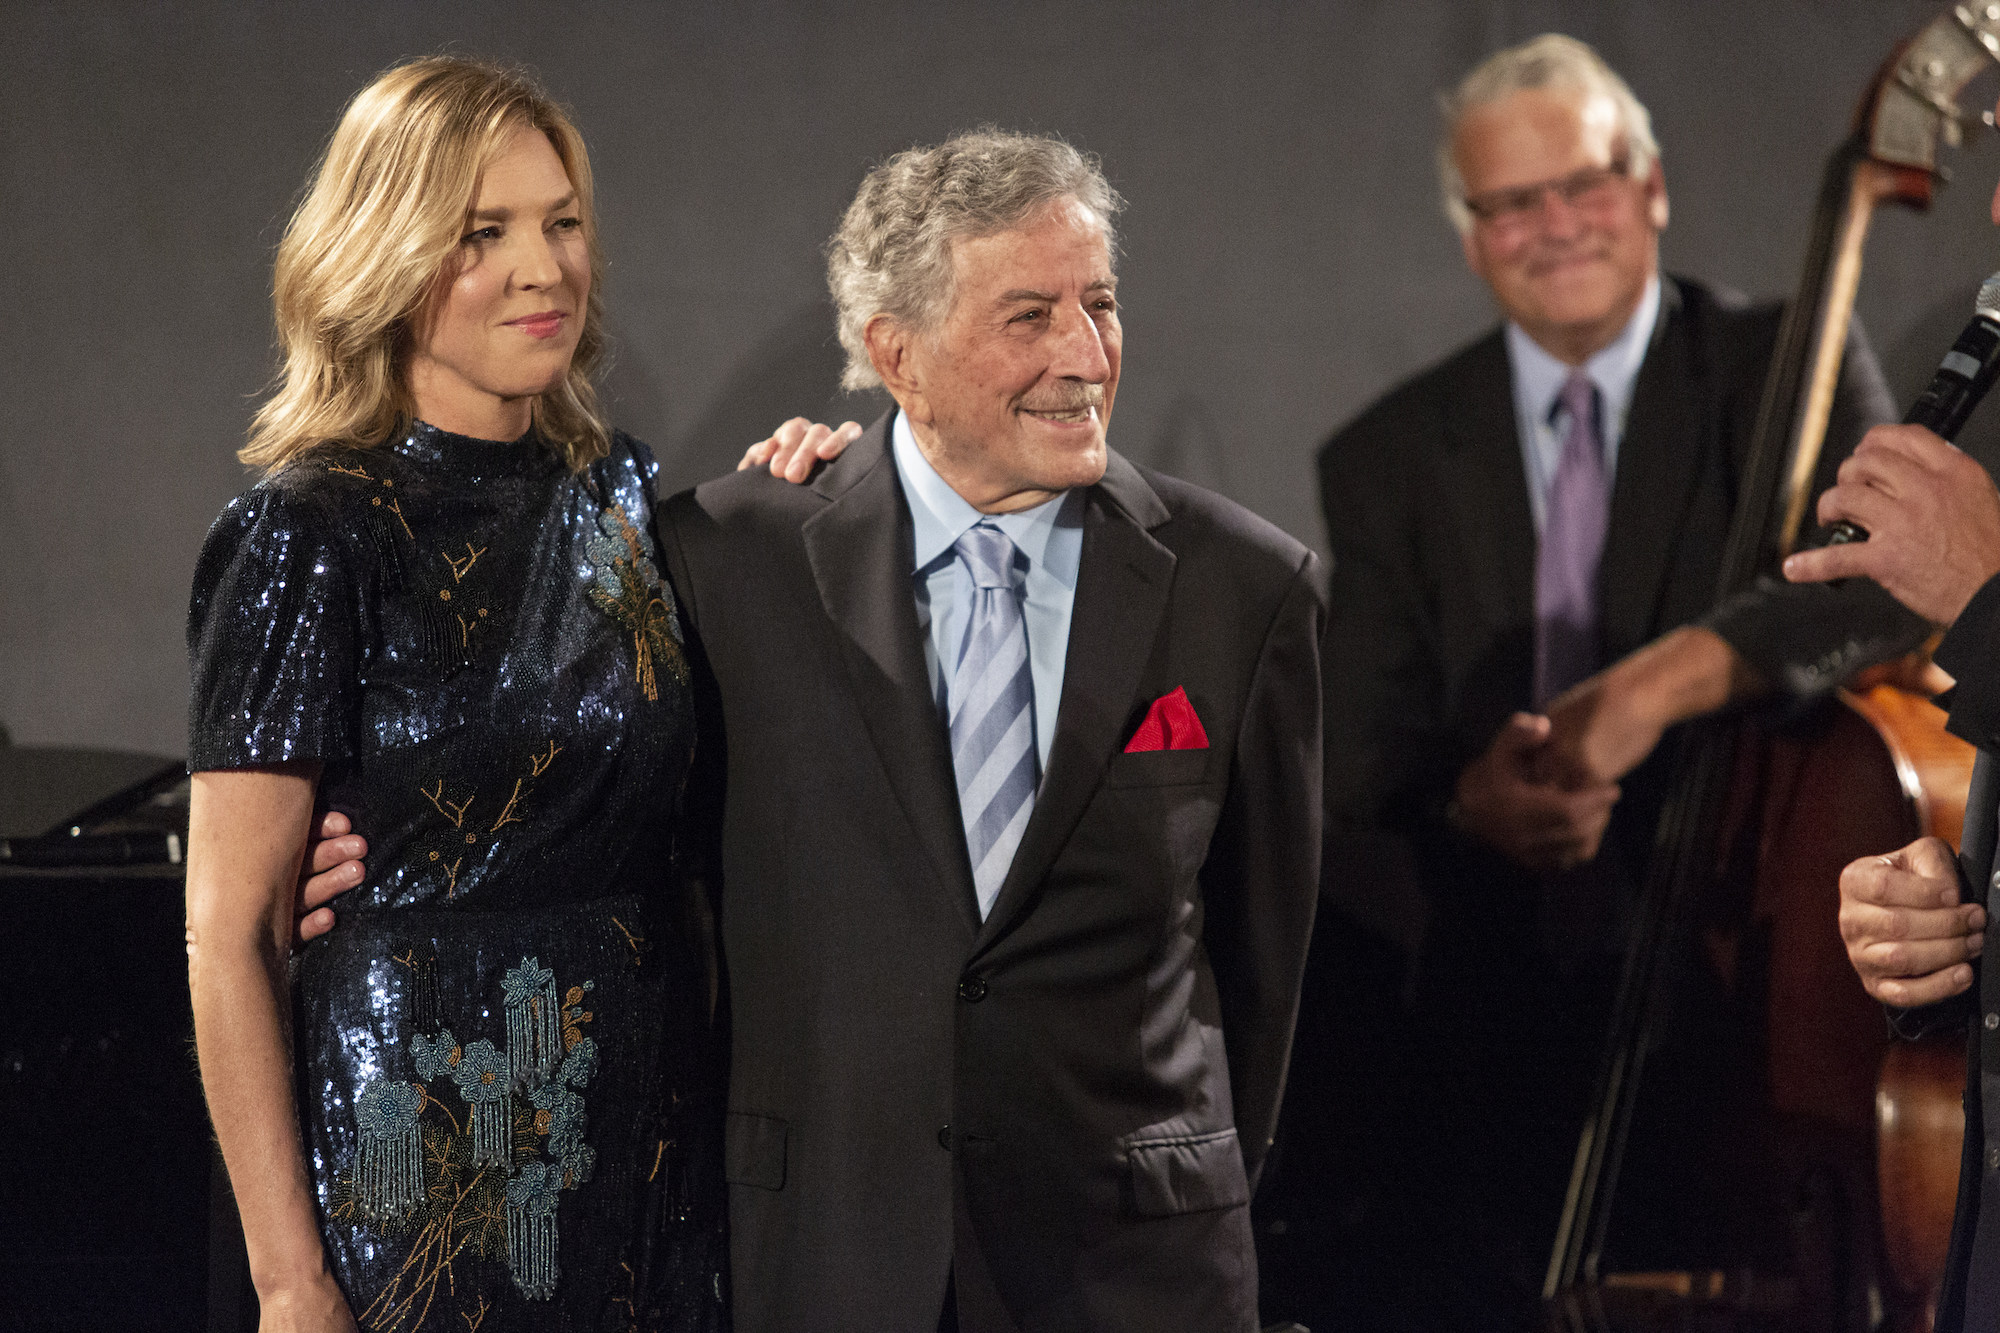 Tony Bennett Achieves GUINNESS WORLD RECORDS™ Title With His New